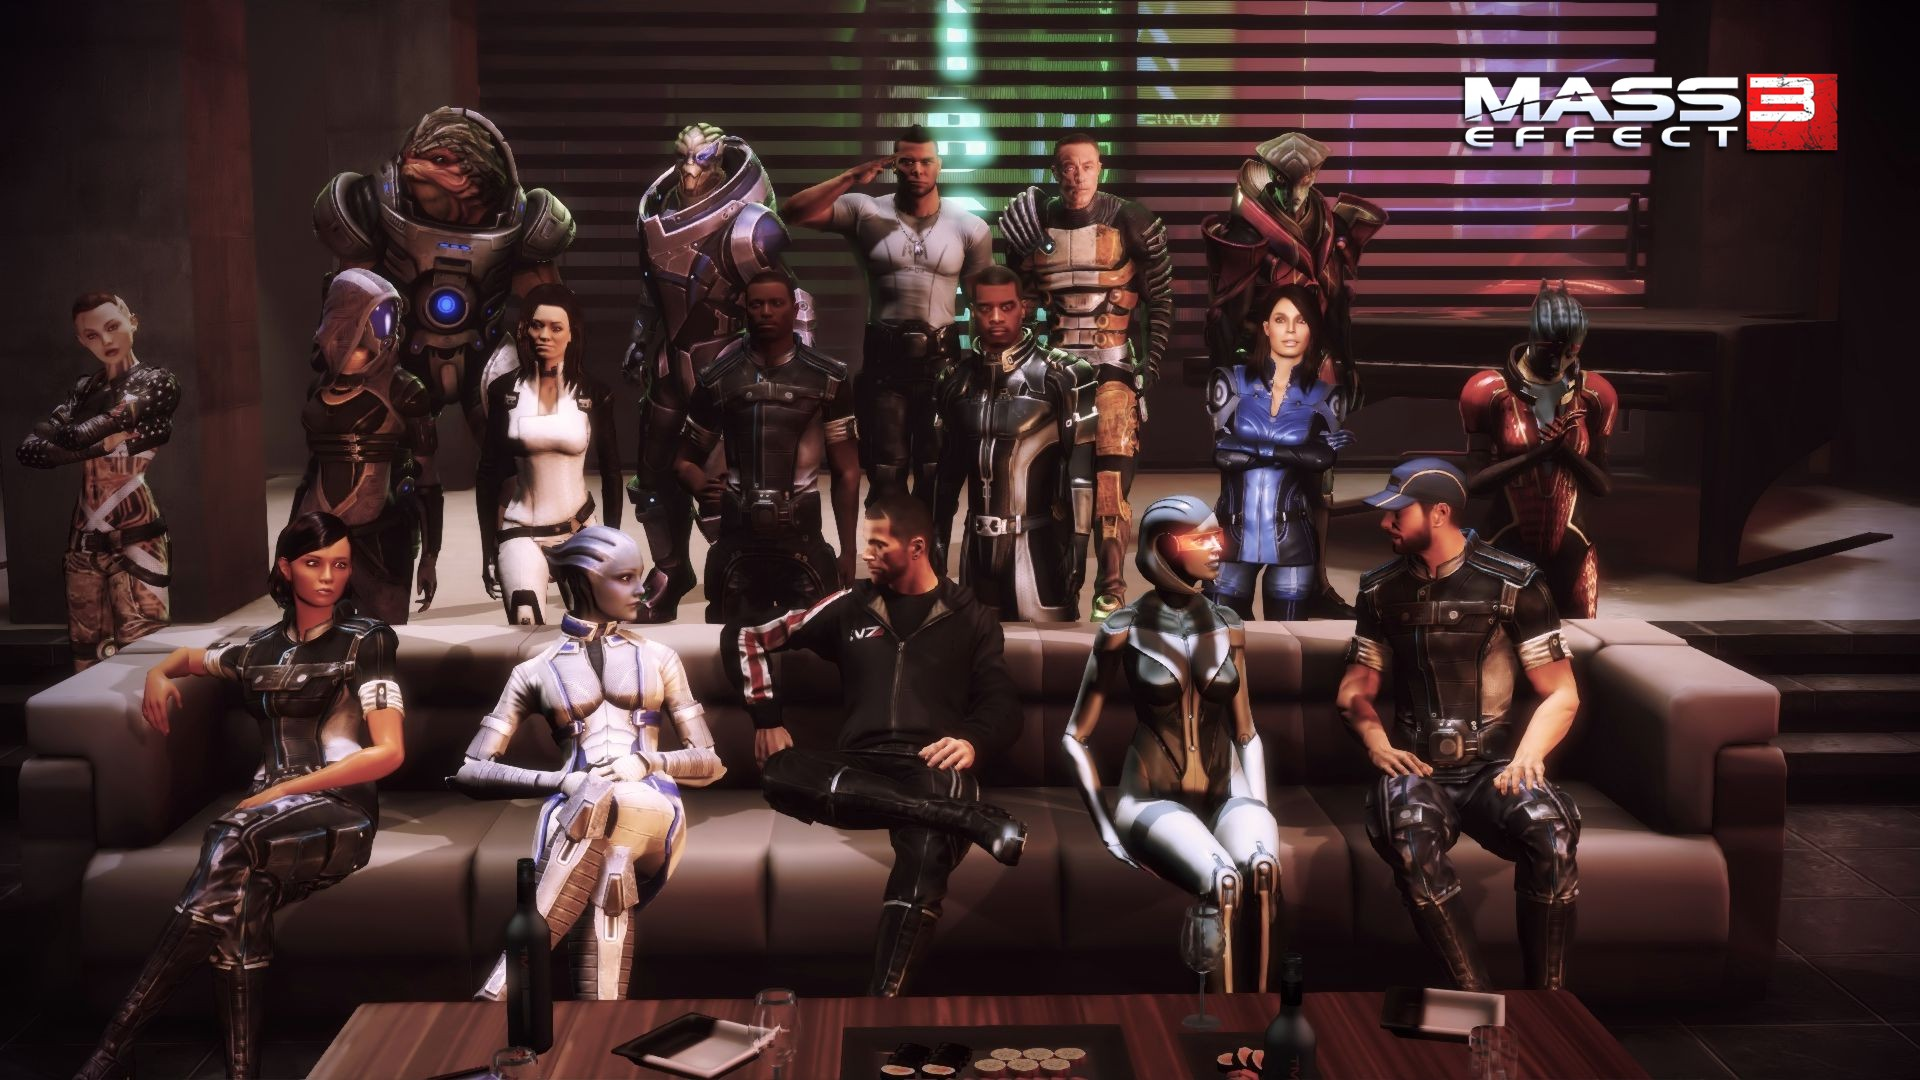 Mass-Effect-3-CitadelDLC-Normandy-Crew